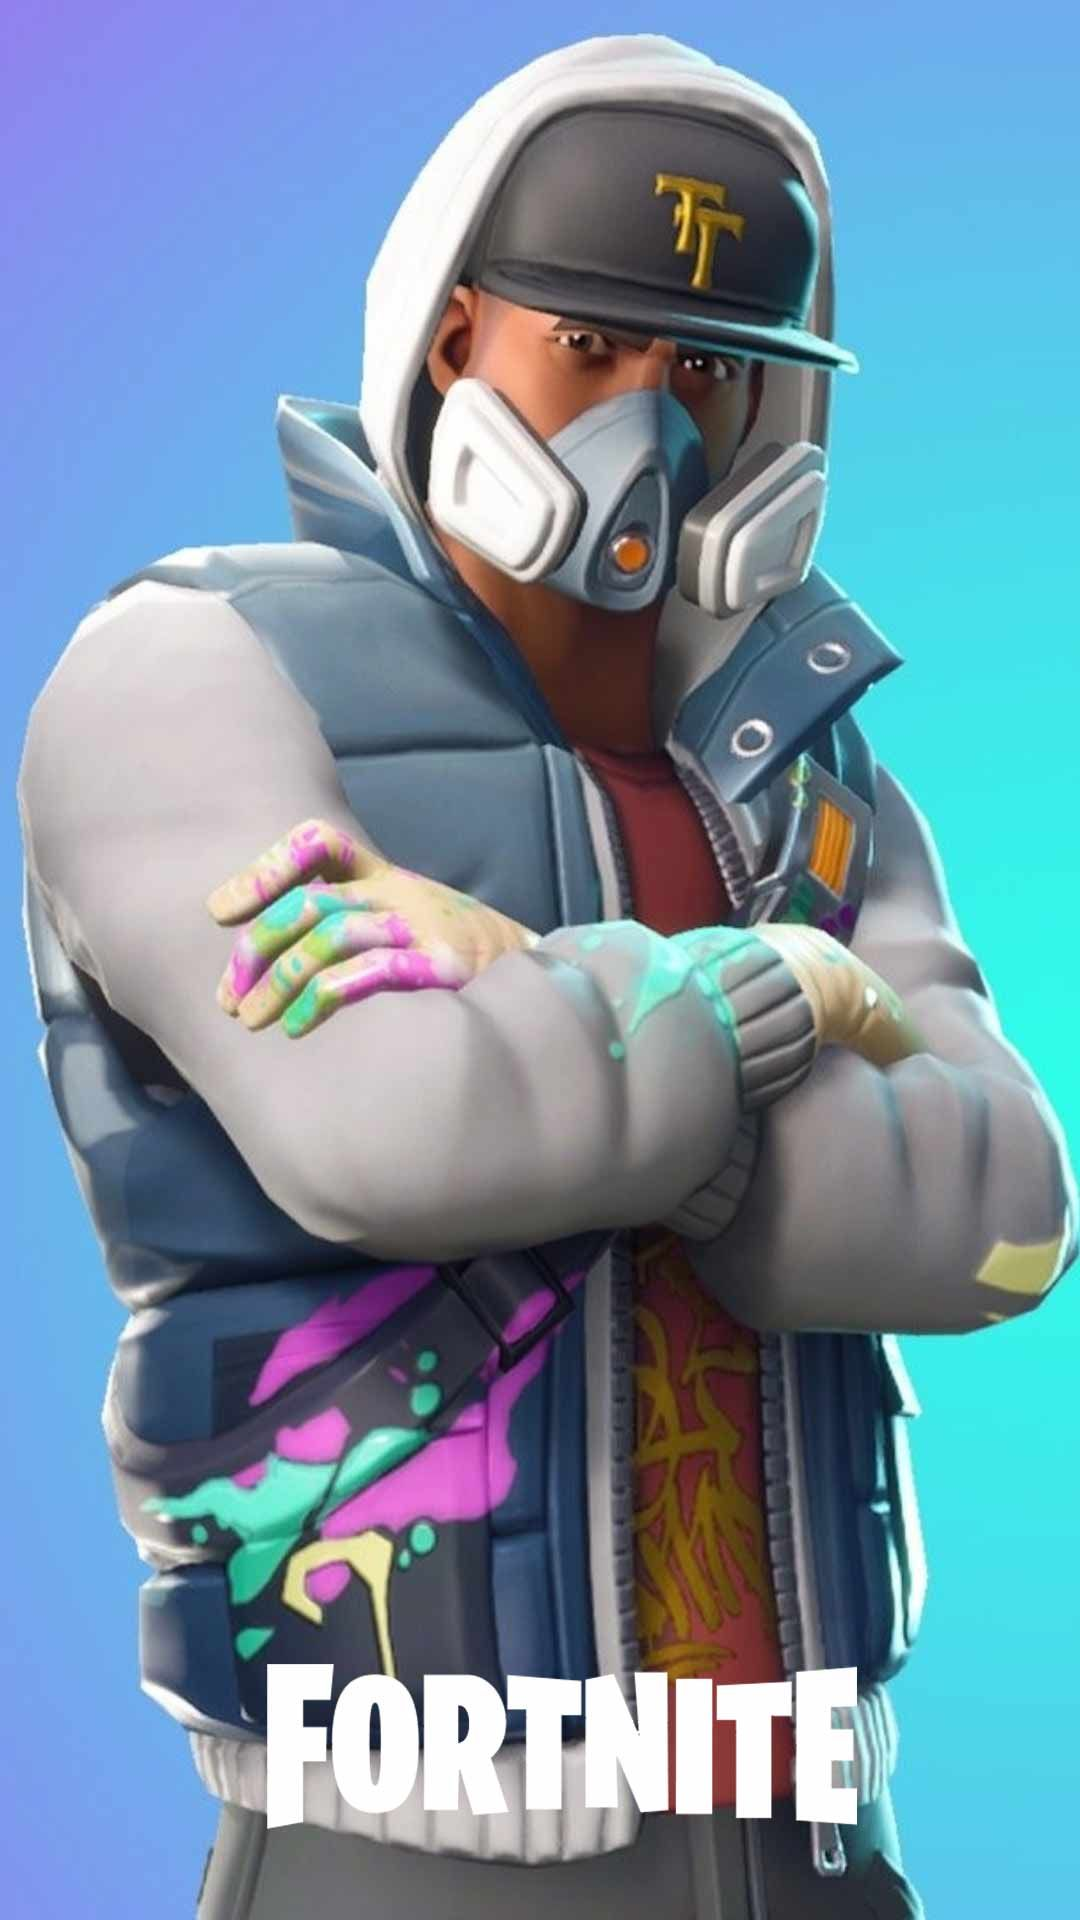 30 Fortnite Wallpaper Hd Phone Backgrounds For Iphone Android Lock Screen Characters Skins Art Hd Phone Backgrounds Android Wallpaper Iphone Background